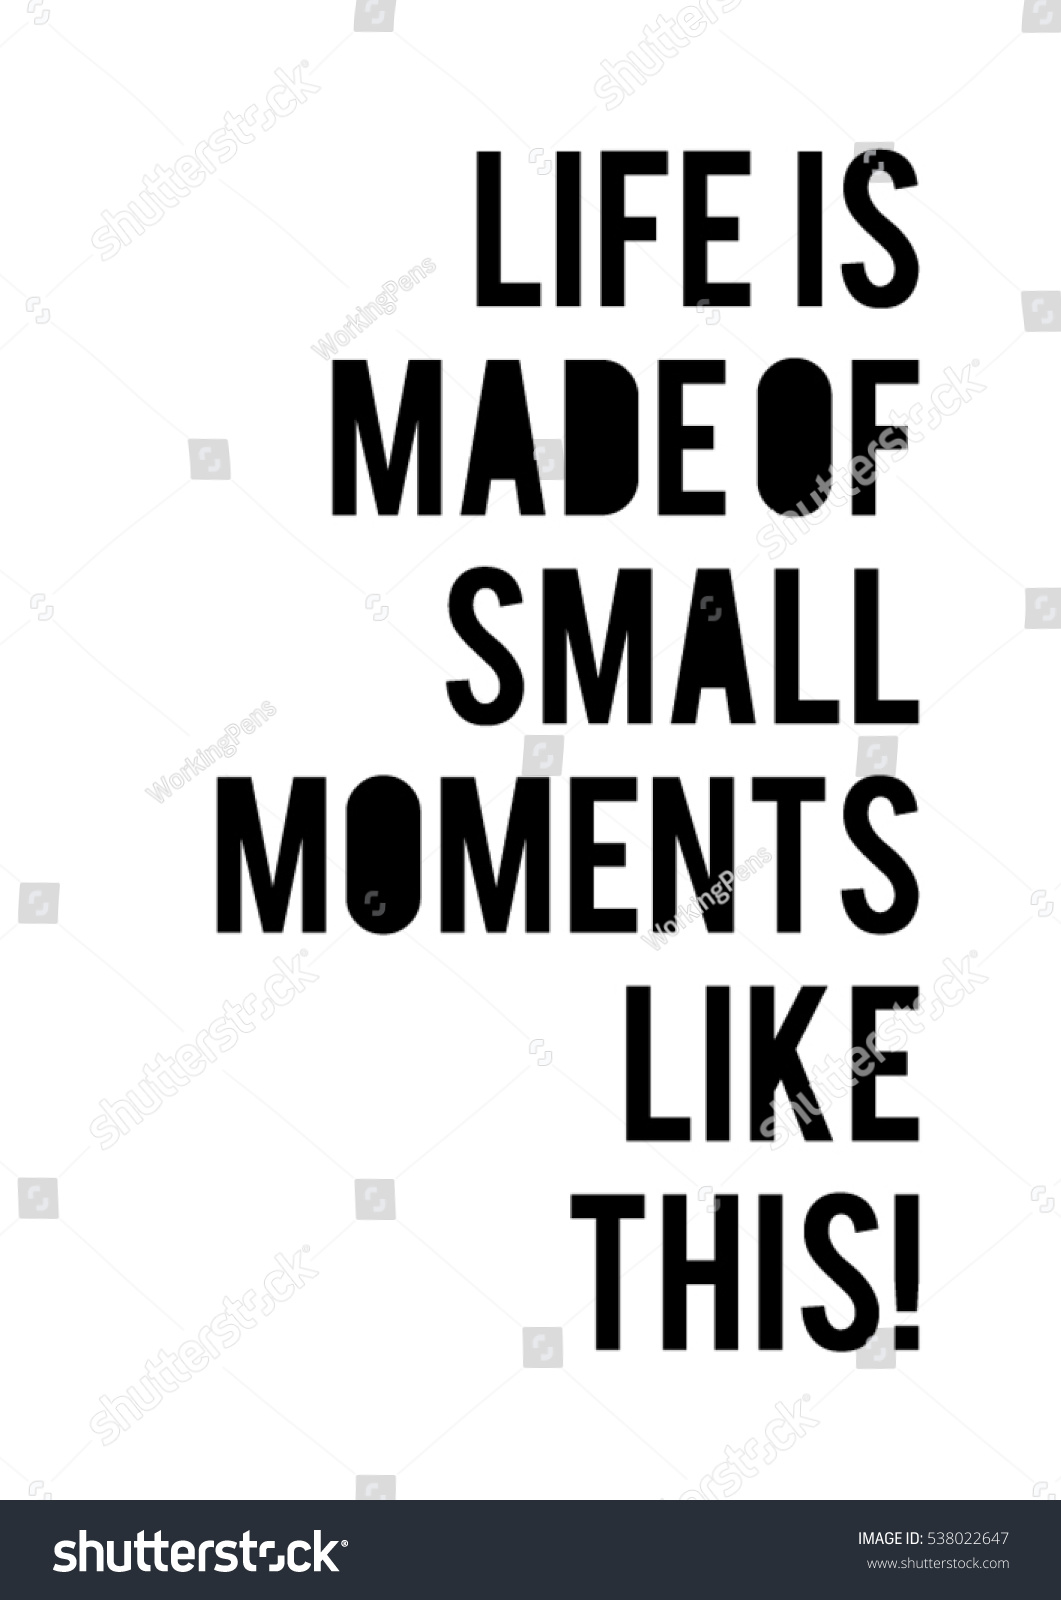 Small Life Quote Life Made Small Moments Like This Stock Vector 538022647